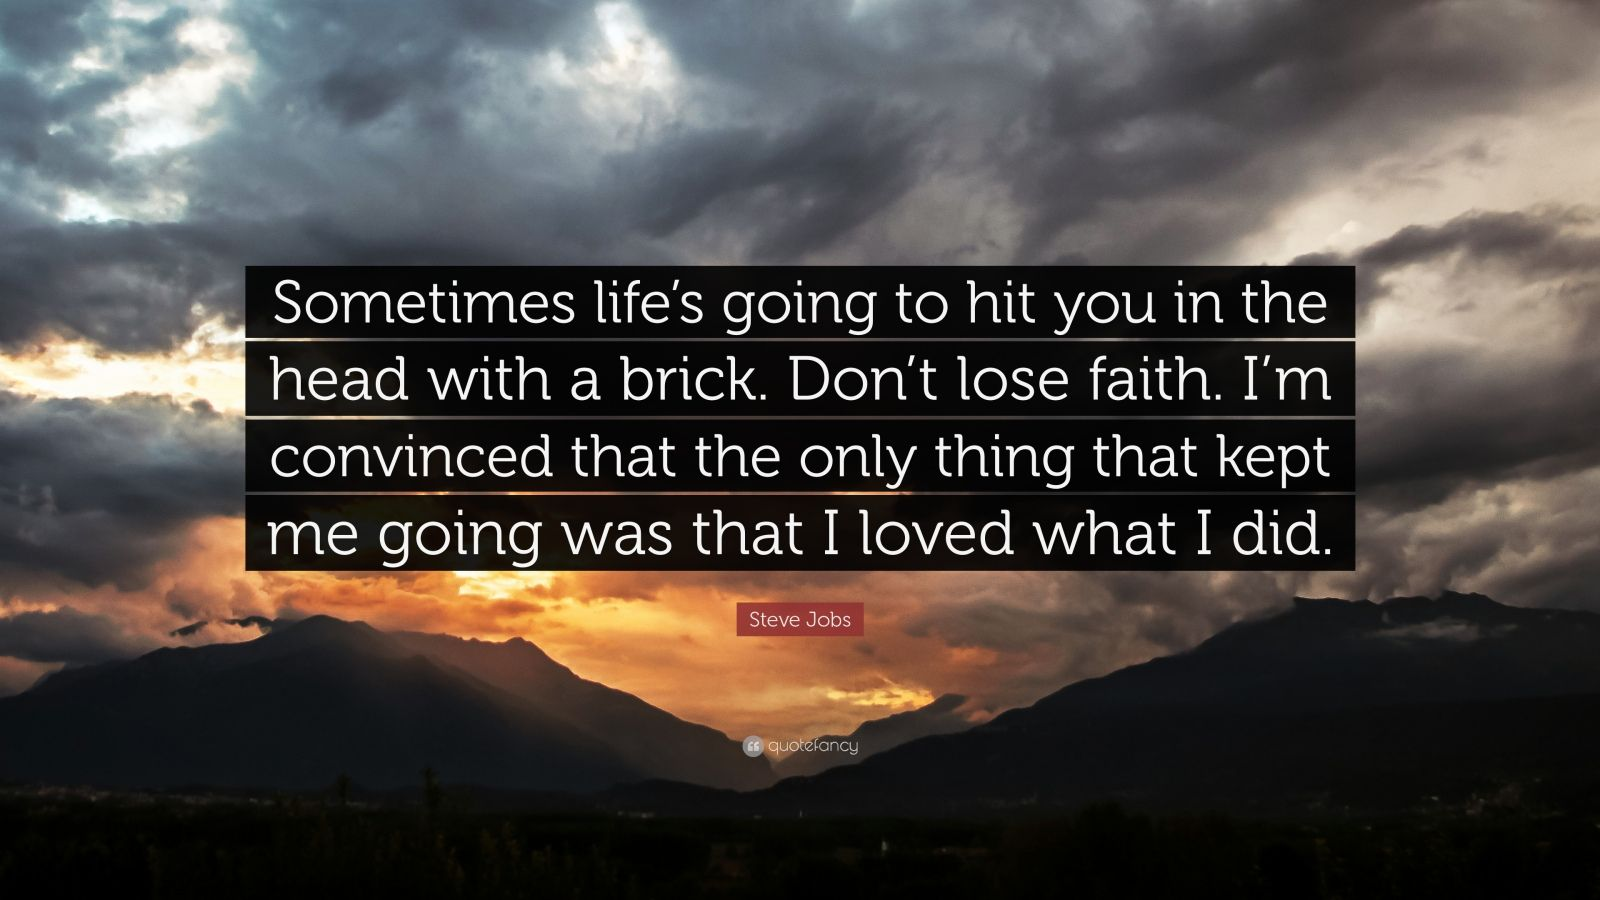 """Steve Jobs Quote: """"Sometimes life's going to hit you in the head with a brick. Don't lose faith. I'm convinced that the only thing that kep..."""" (22 wallpapers) - Quotefancy Steve Jobs Quote: """"Sometimes life's going to hit you in the head with a brick. Don't lose faith. I'm convinced that the only thing that kep..."""" - 웹"""